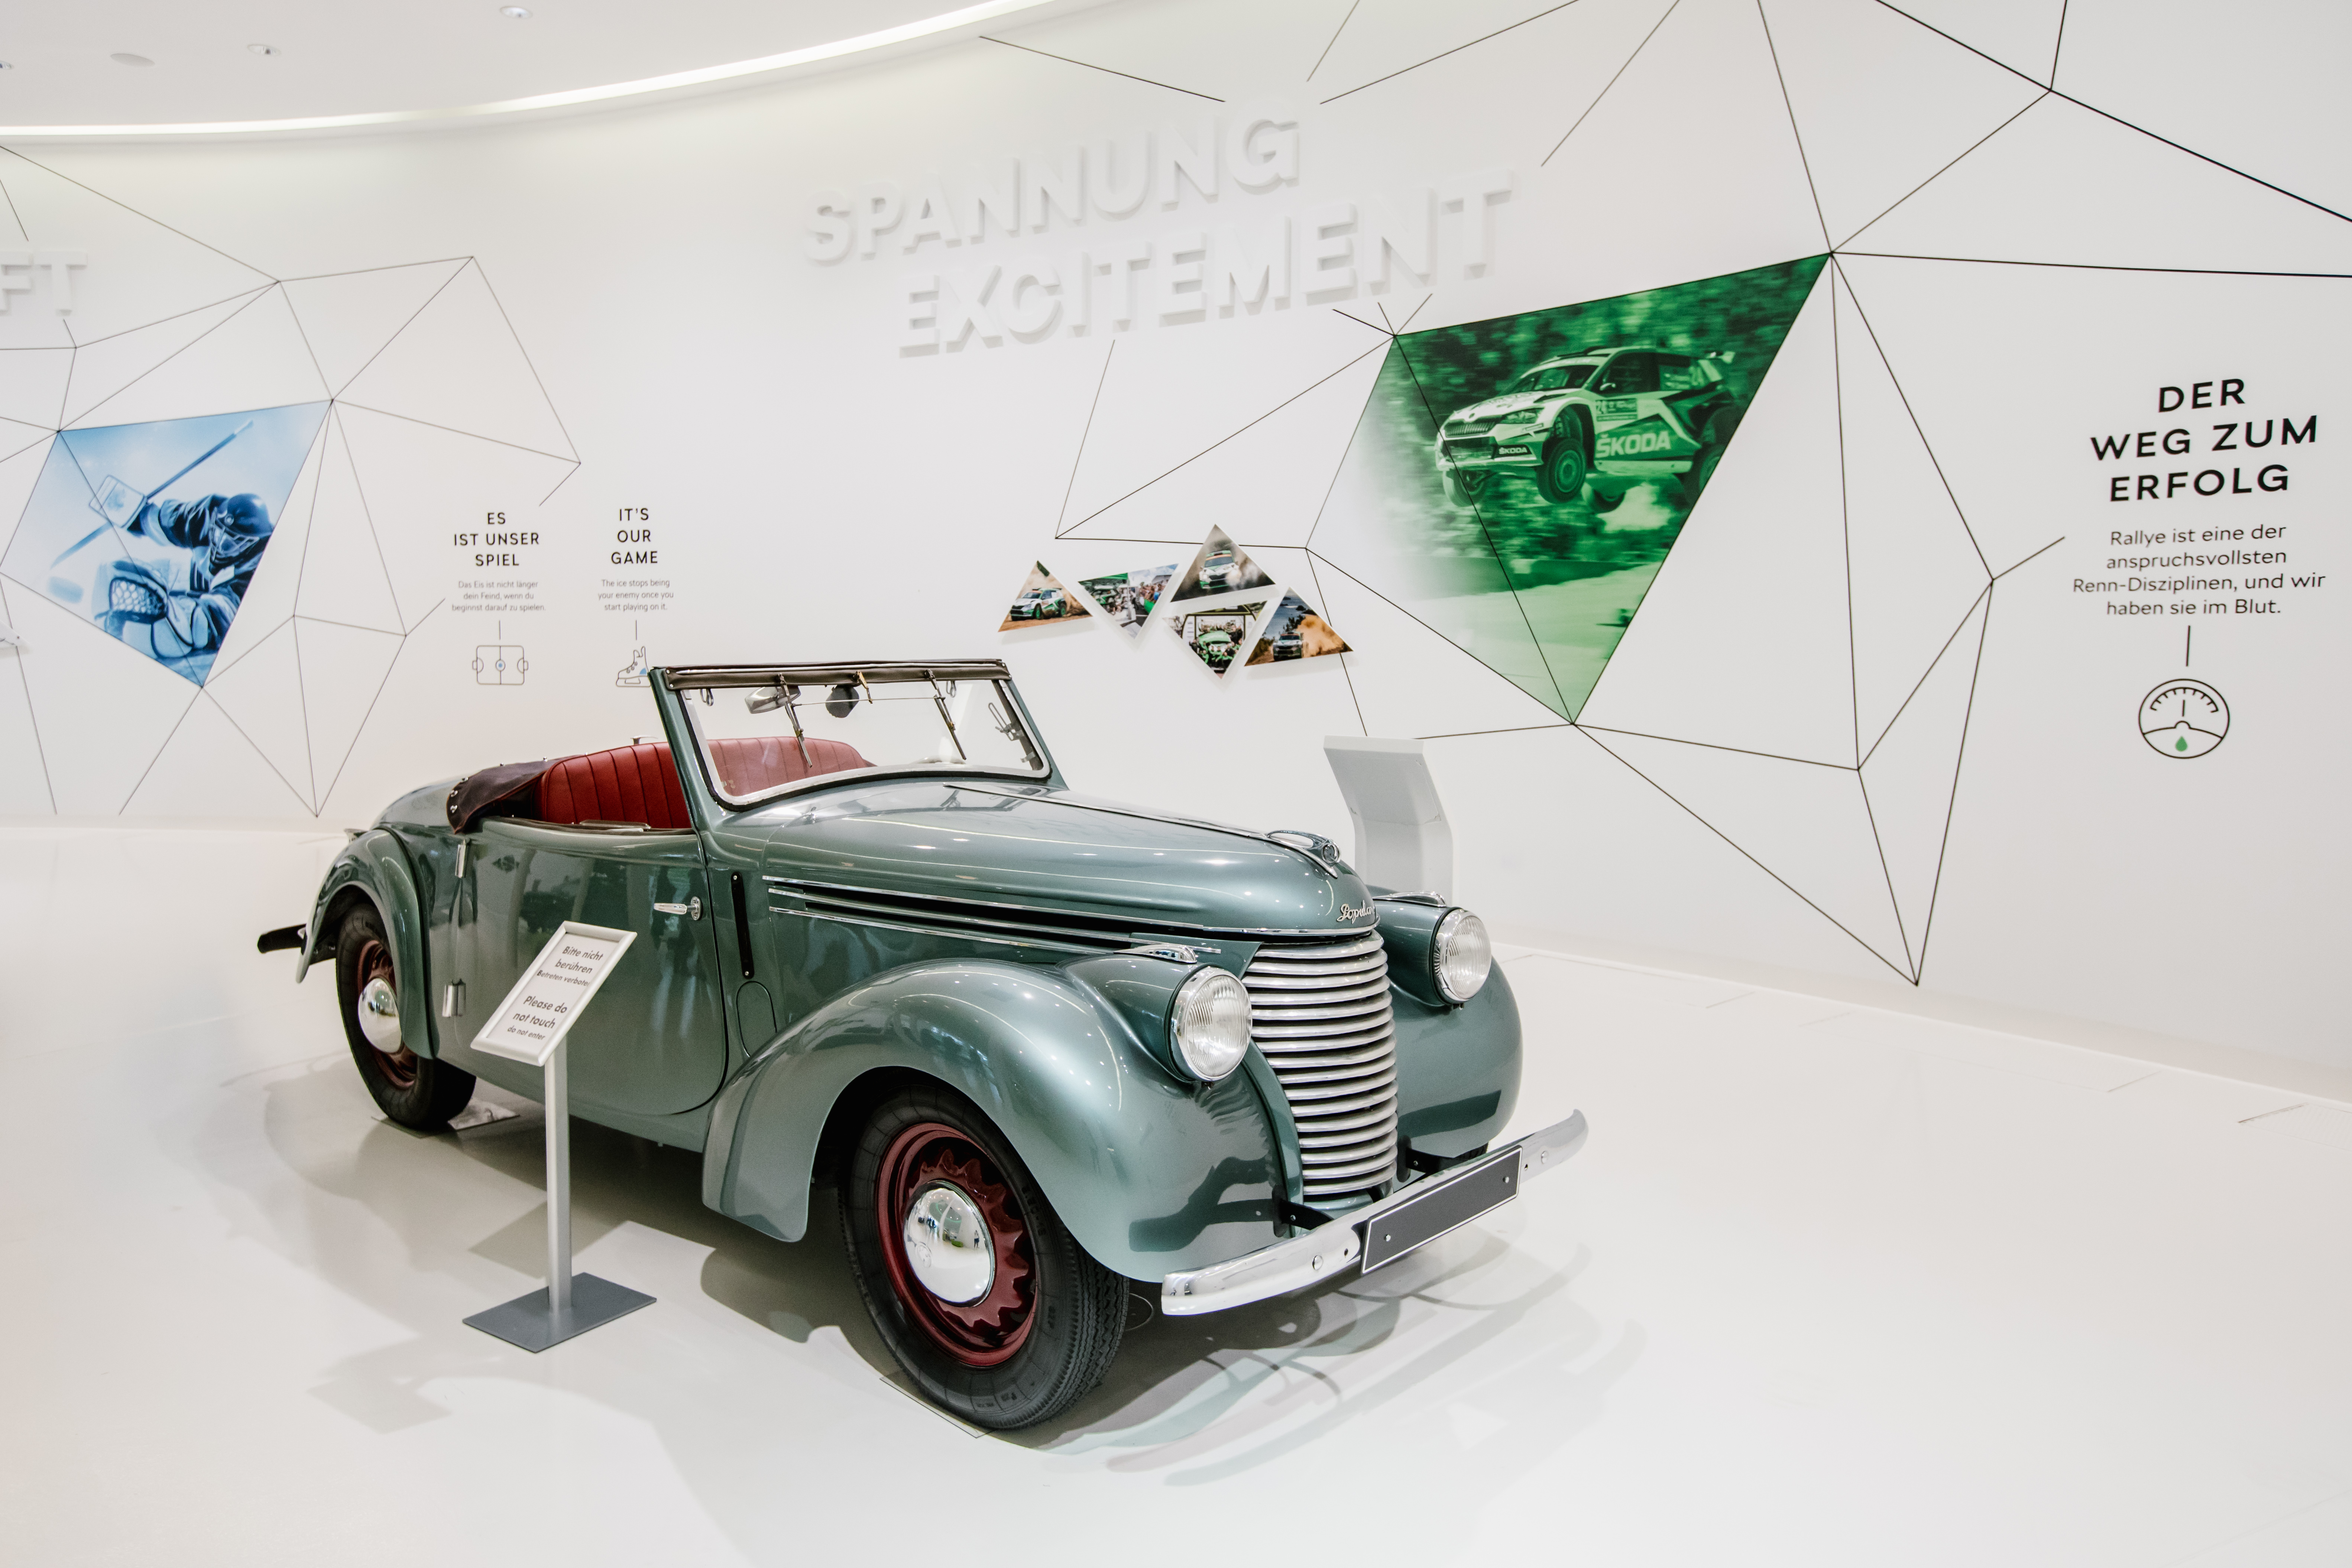 125 years of SKODA: Special exhibition at Autostadt - Image 2